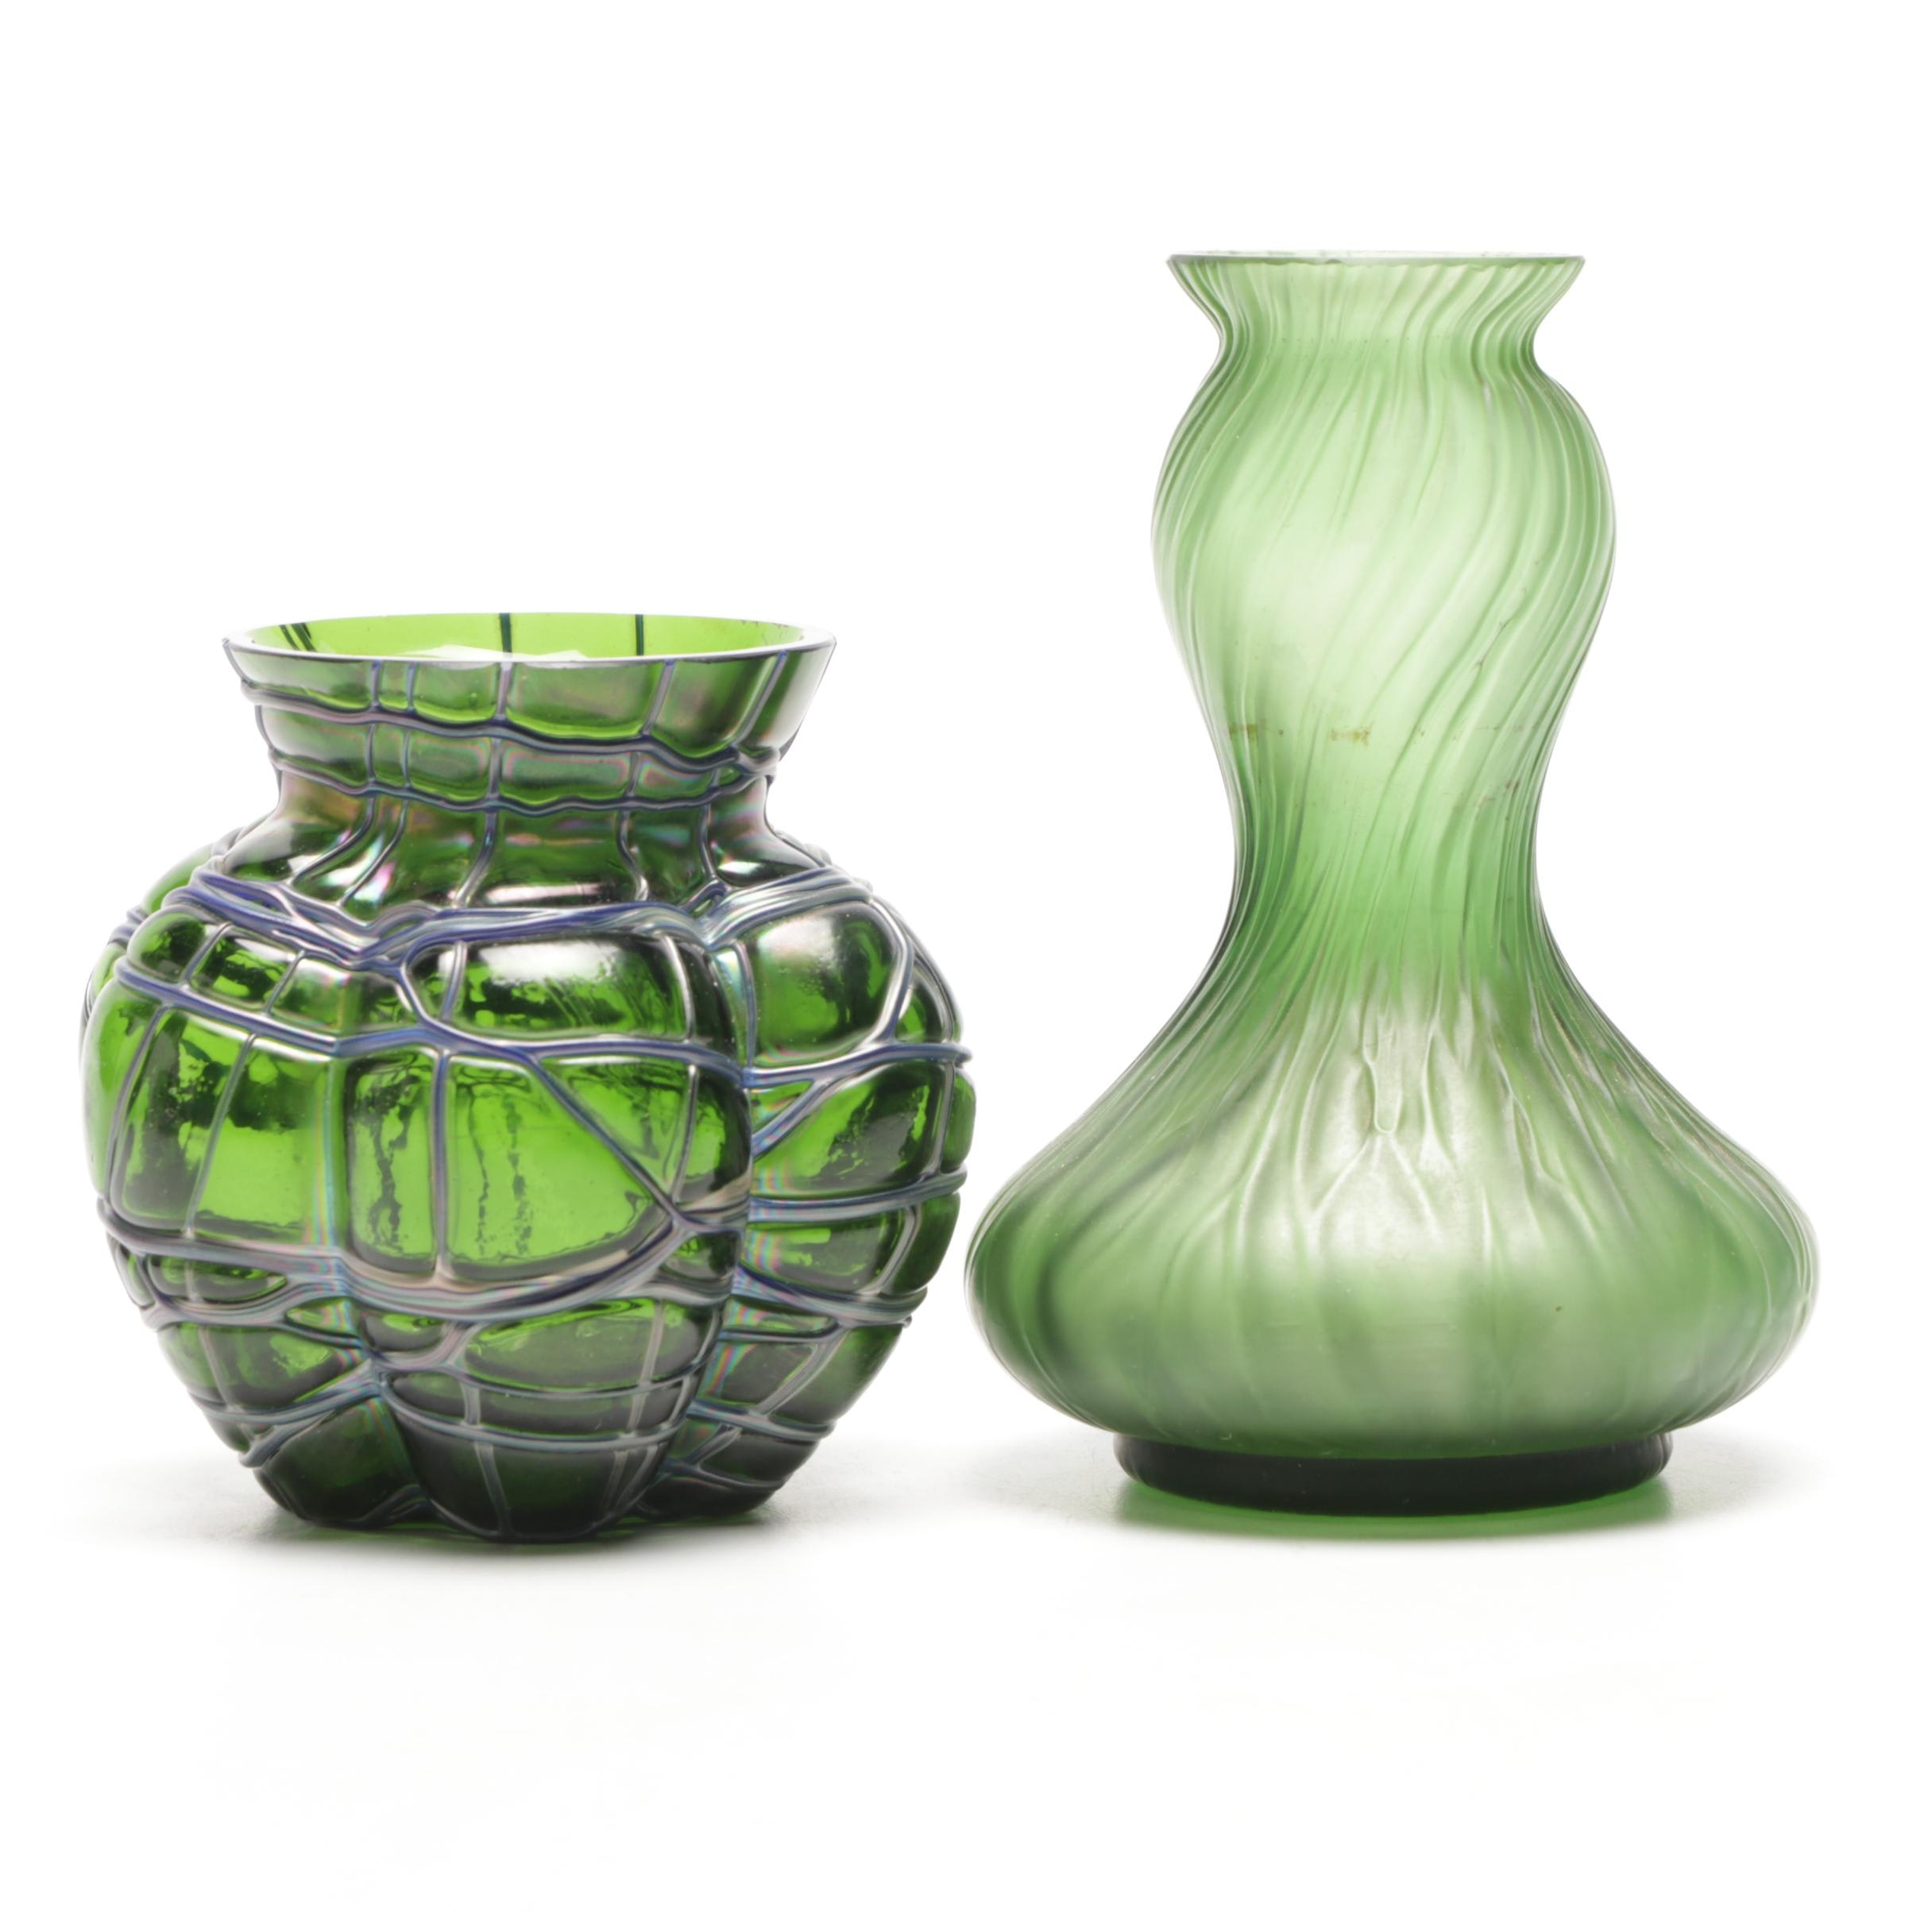 Two Green Art Glass Vases